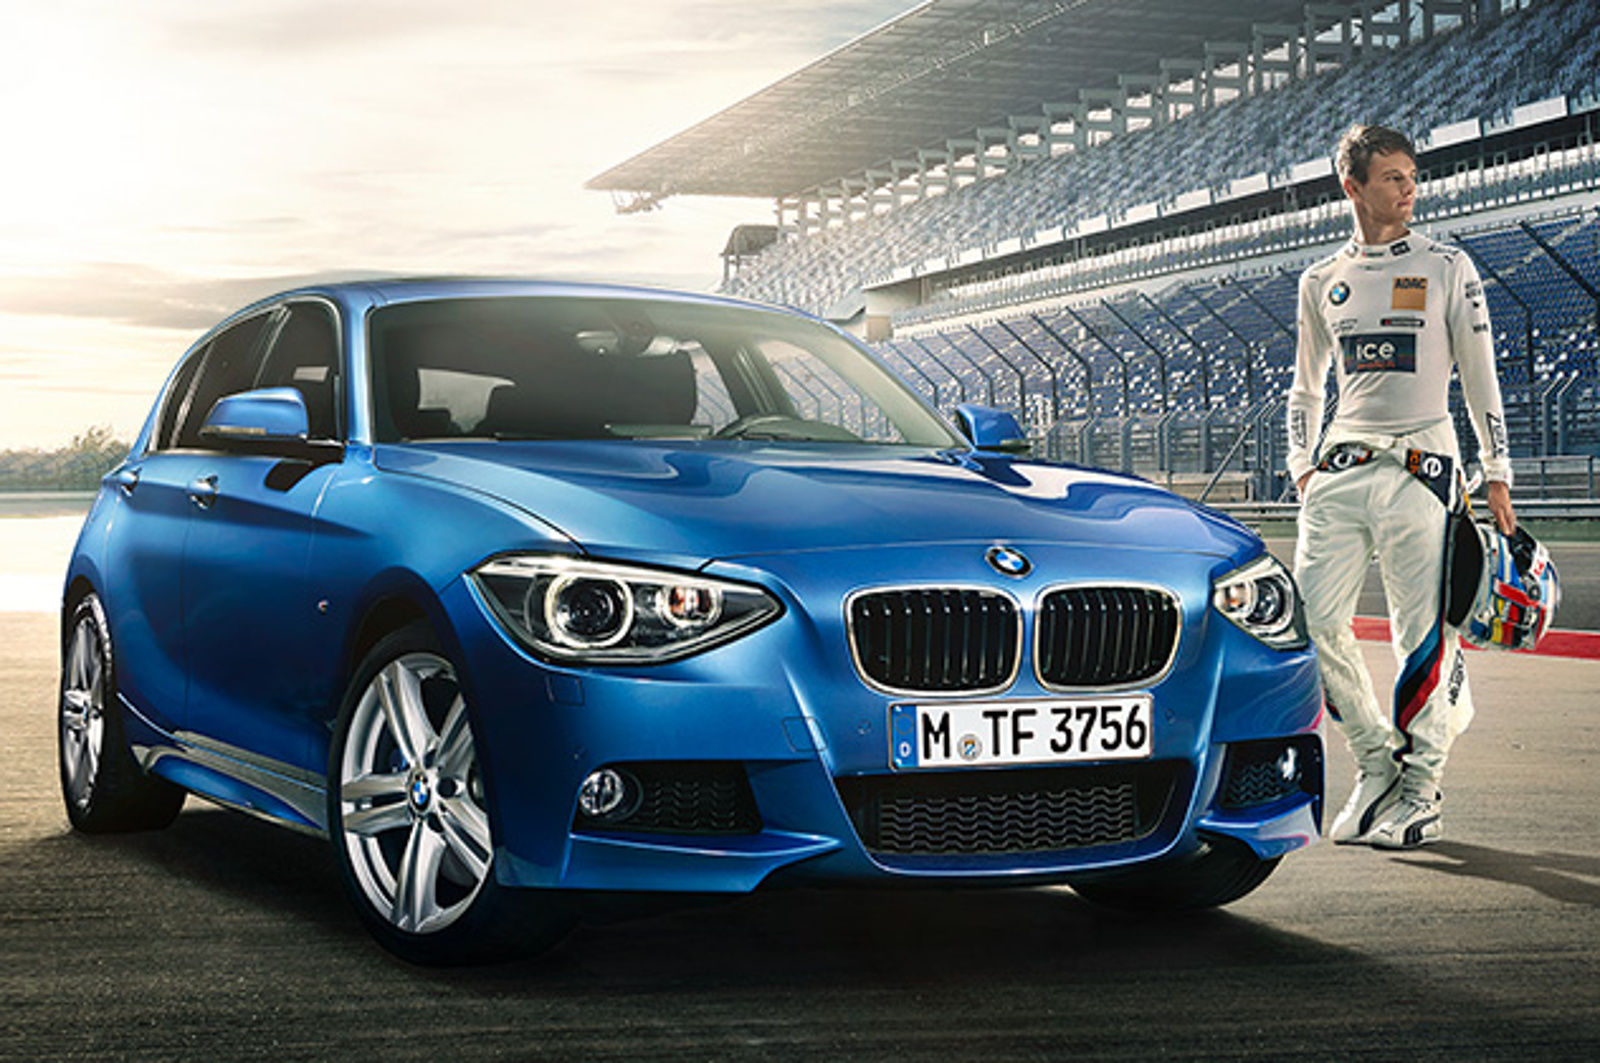 bmw 1er (f20) 2014 wallpaper #15